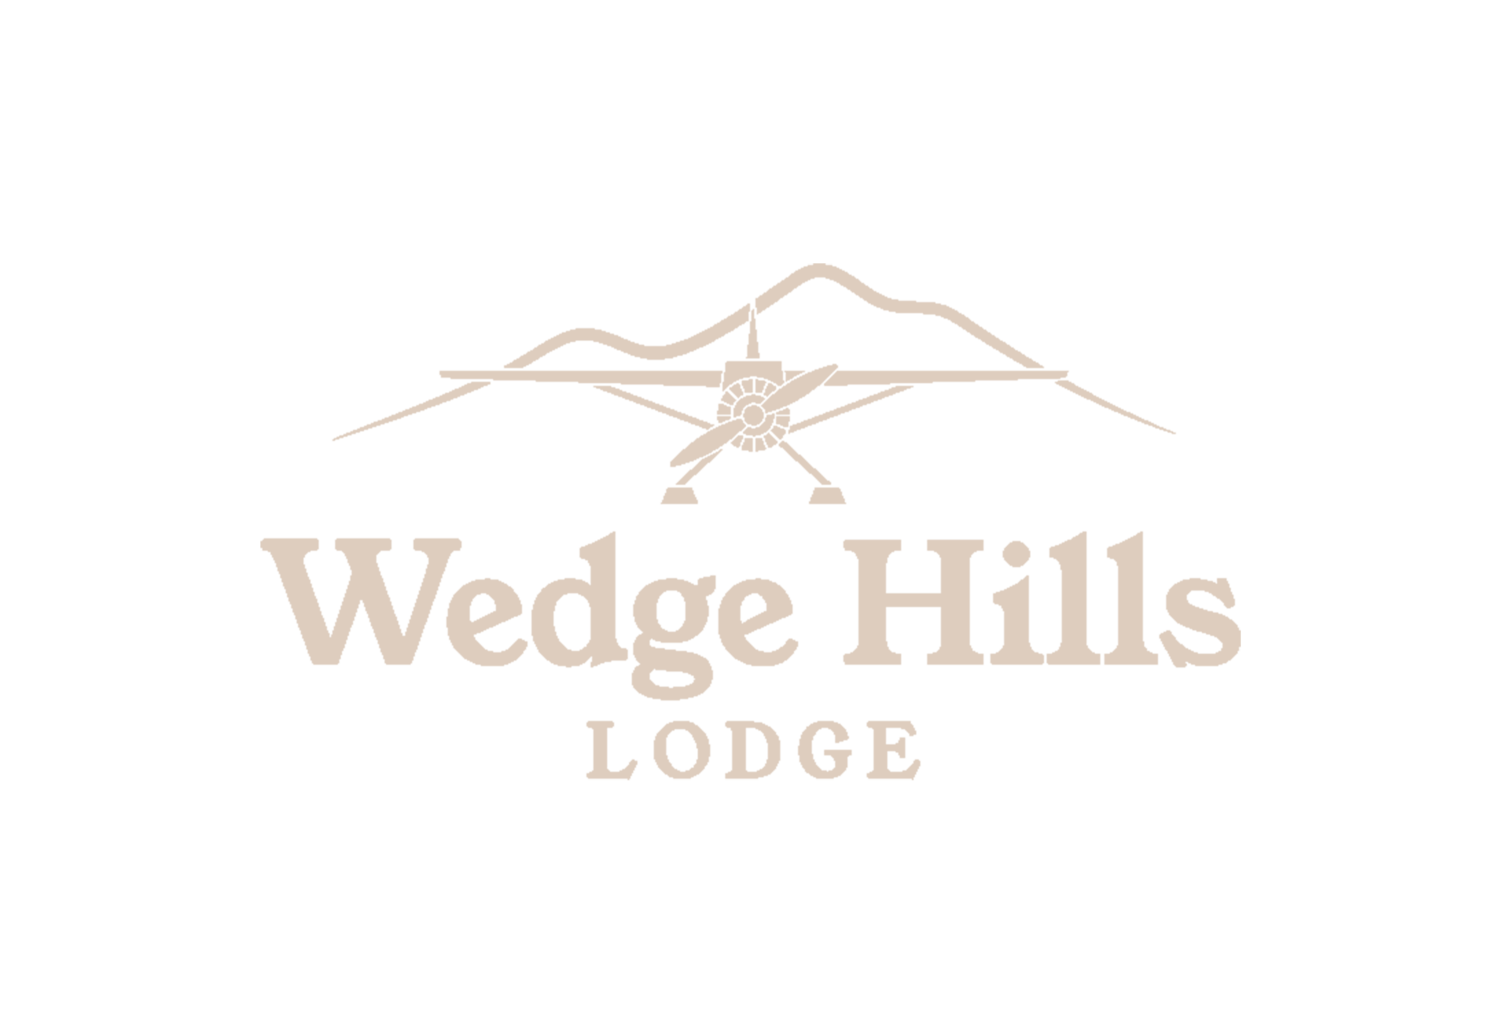 Wedge Hills Lodge